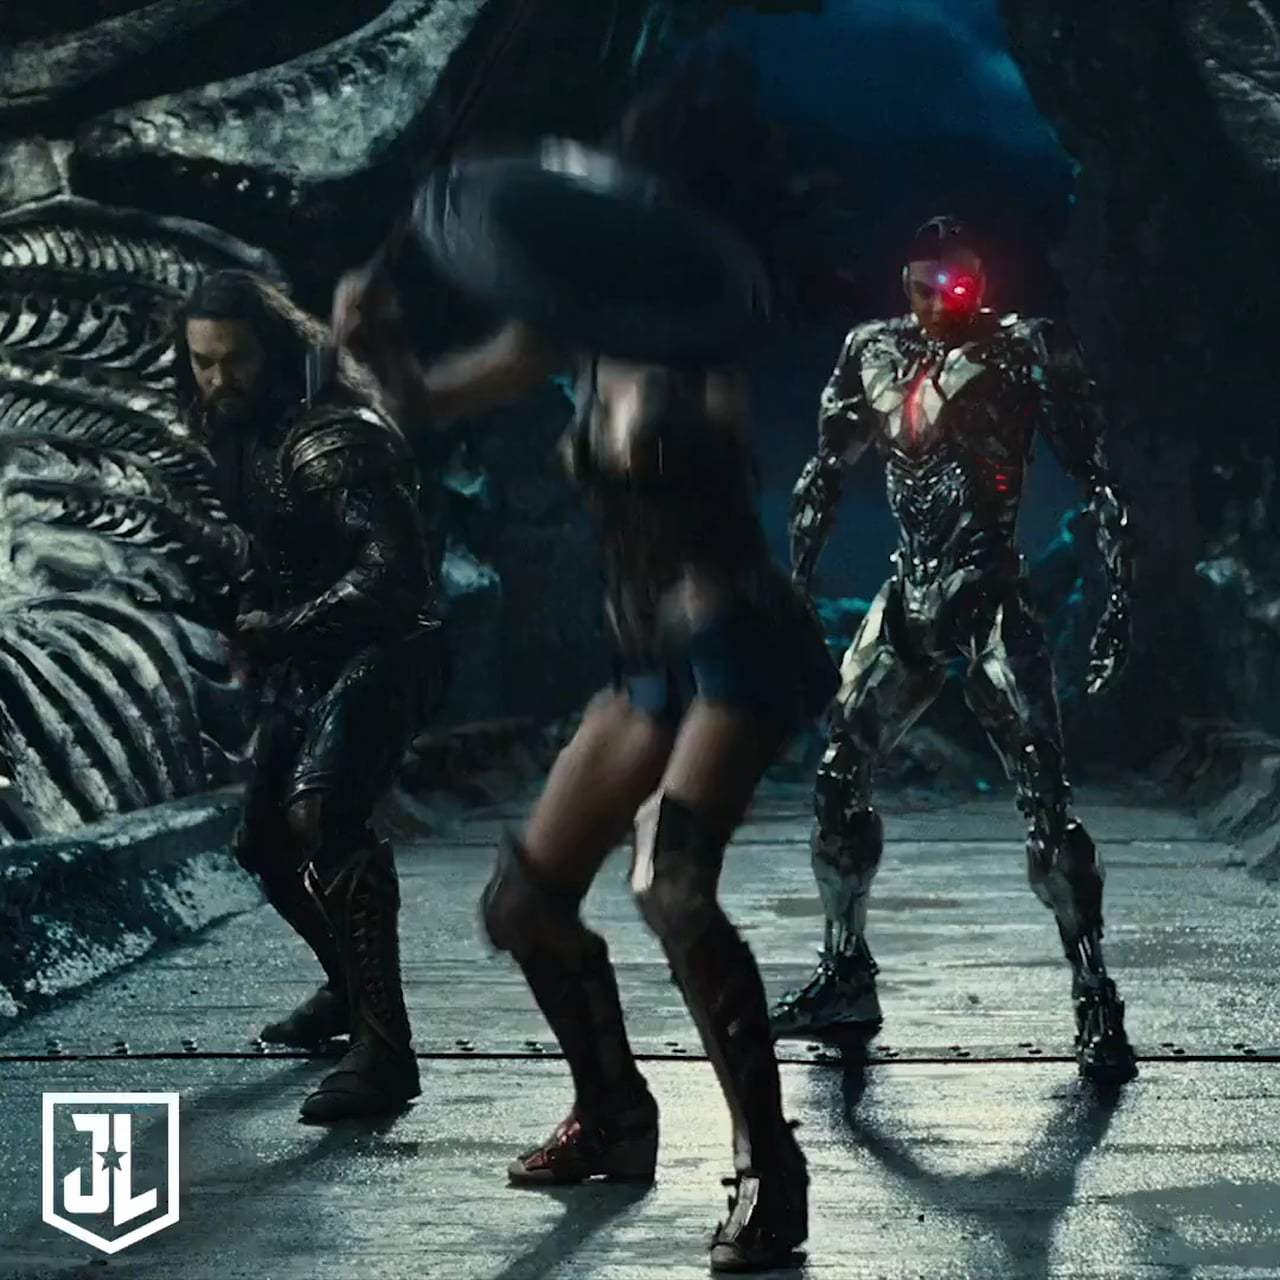 Justice League Featurette - Casting Wonder Woman (2017) Screen Capture #3